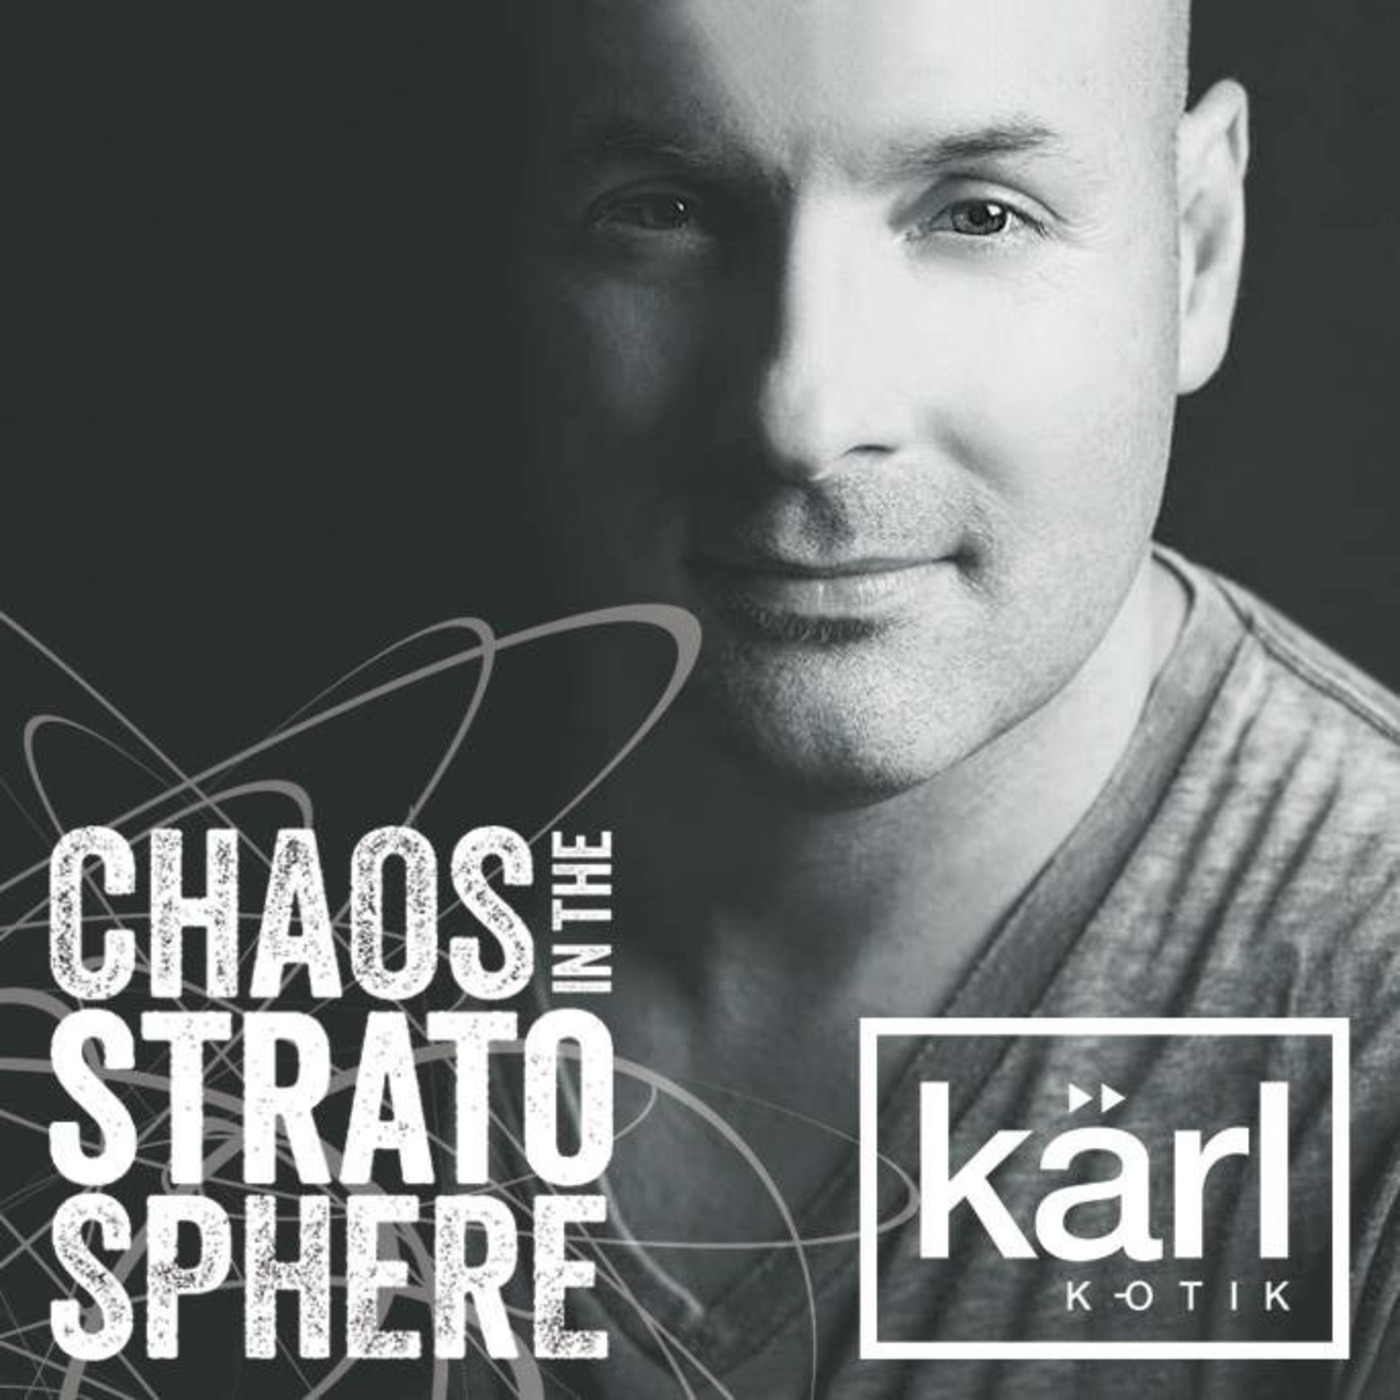 DJ kärl k-otik: Chaos In The Stratosphere